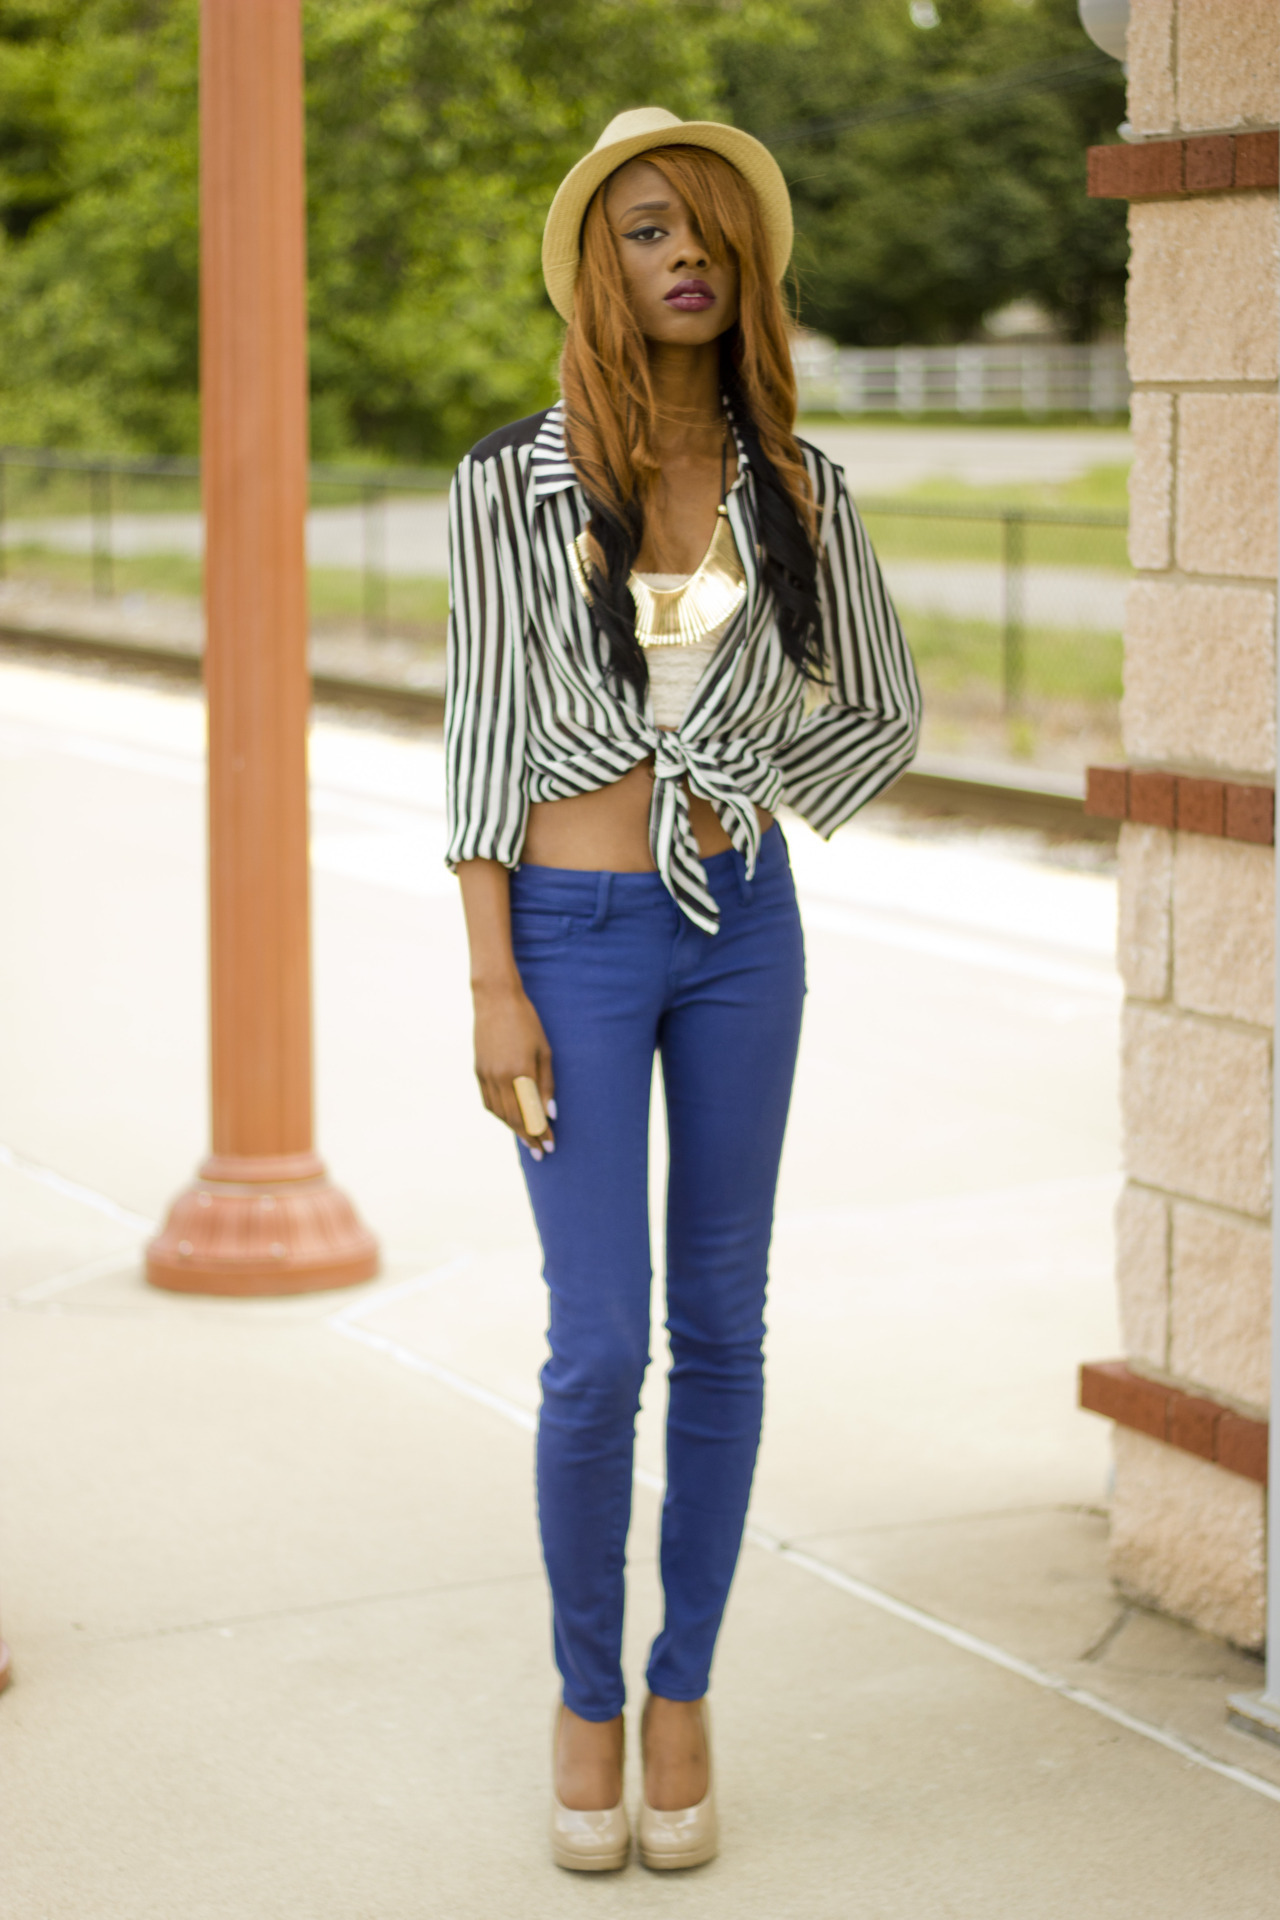 http://vinylreligion.tumblr.com http://lookbook.nu/look/3454737-blue-jeans-striped-shirt